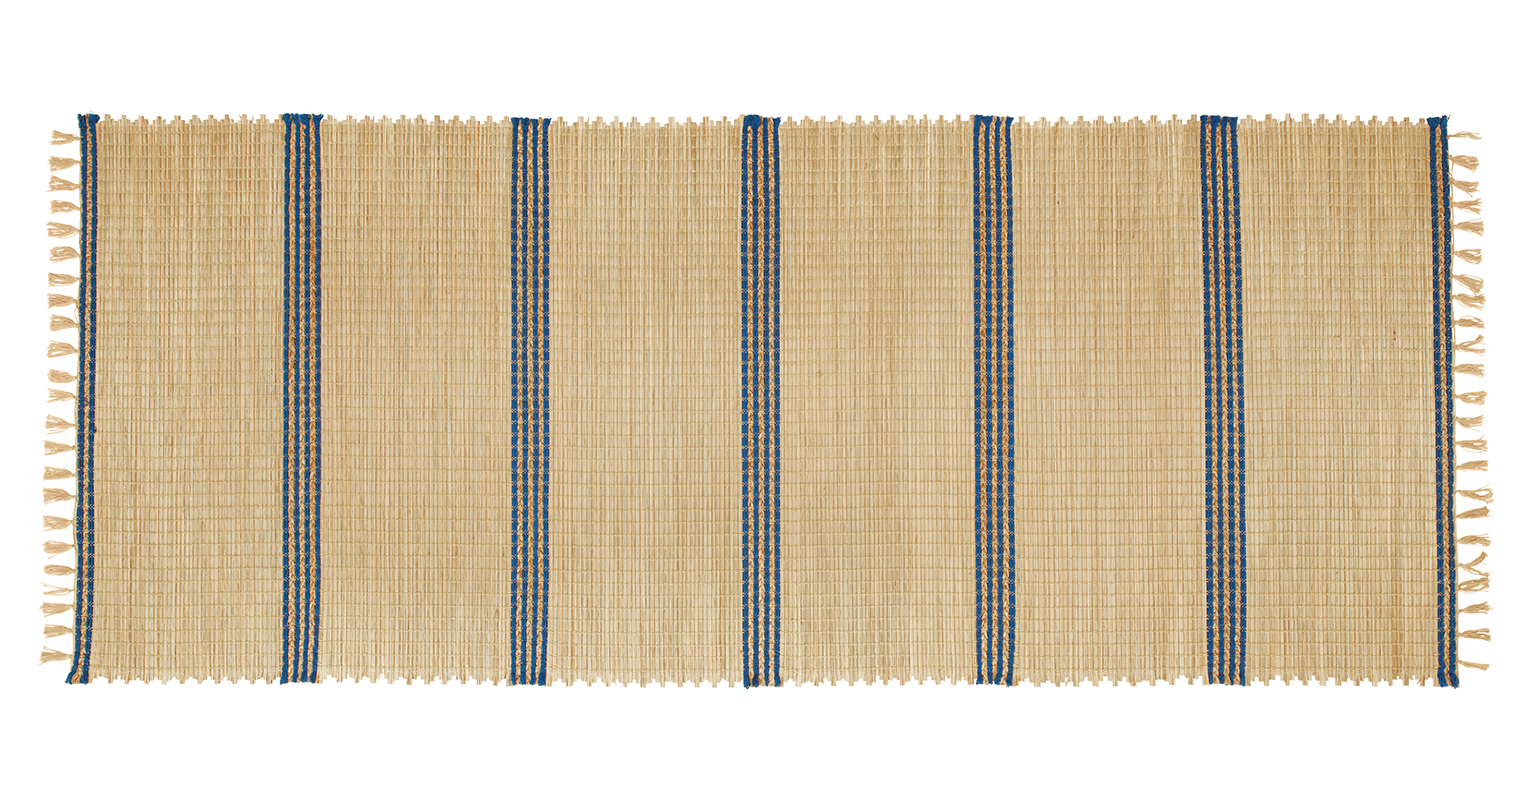 Ikea April Collection 2019: TÄNKVÄRD flatwoven rug